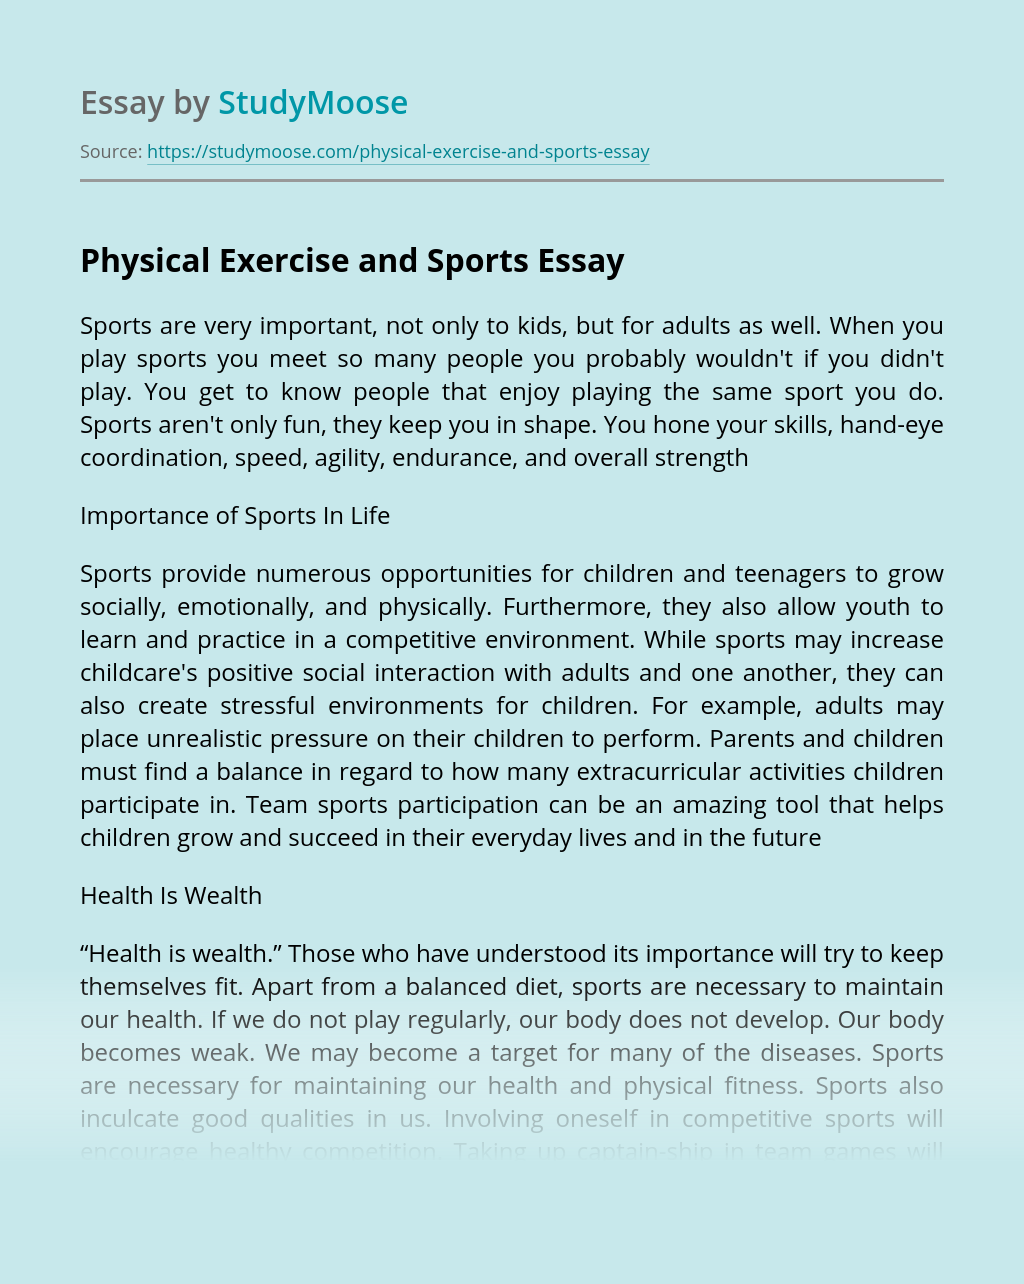 Physical Exercise and Sports